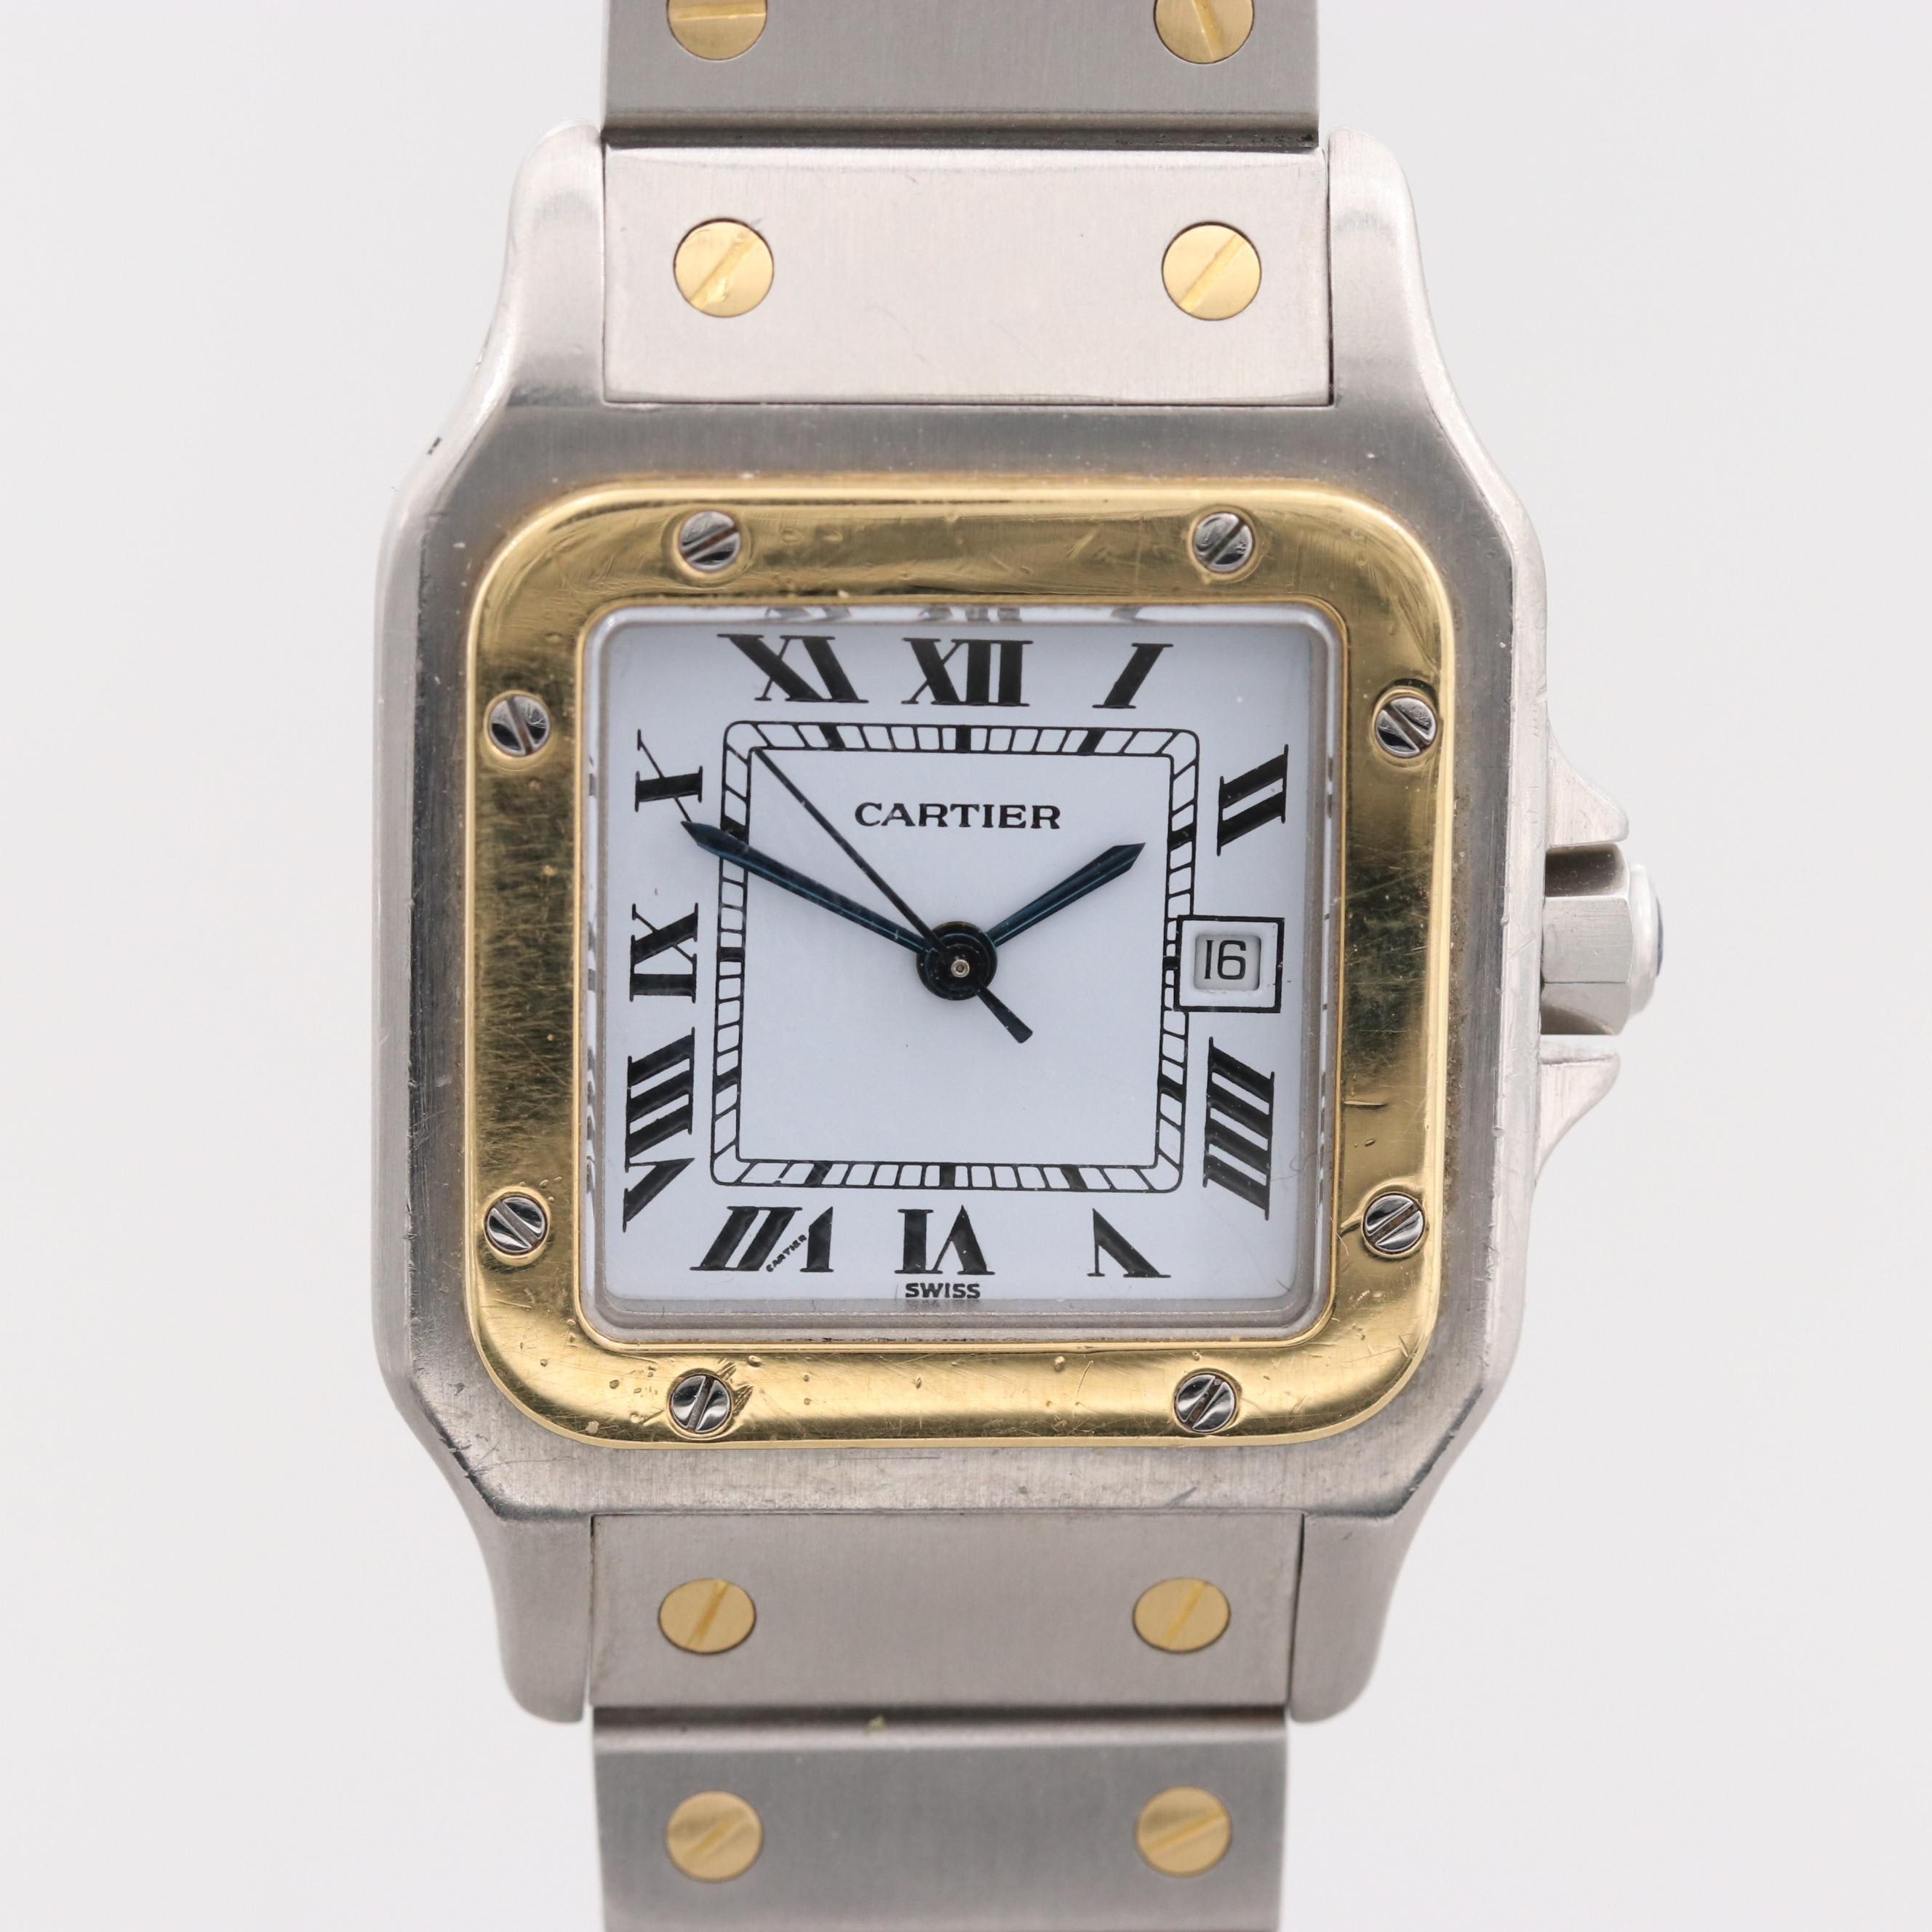 Santos de Cartier Stainless Steel and 18K Yellow Gold Automatic Wristwatch